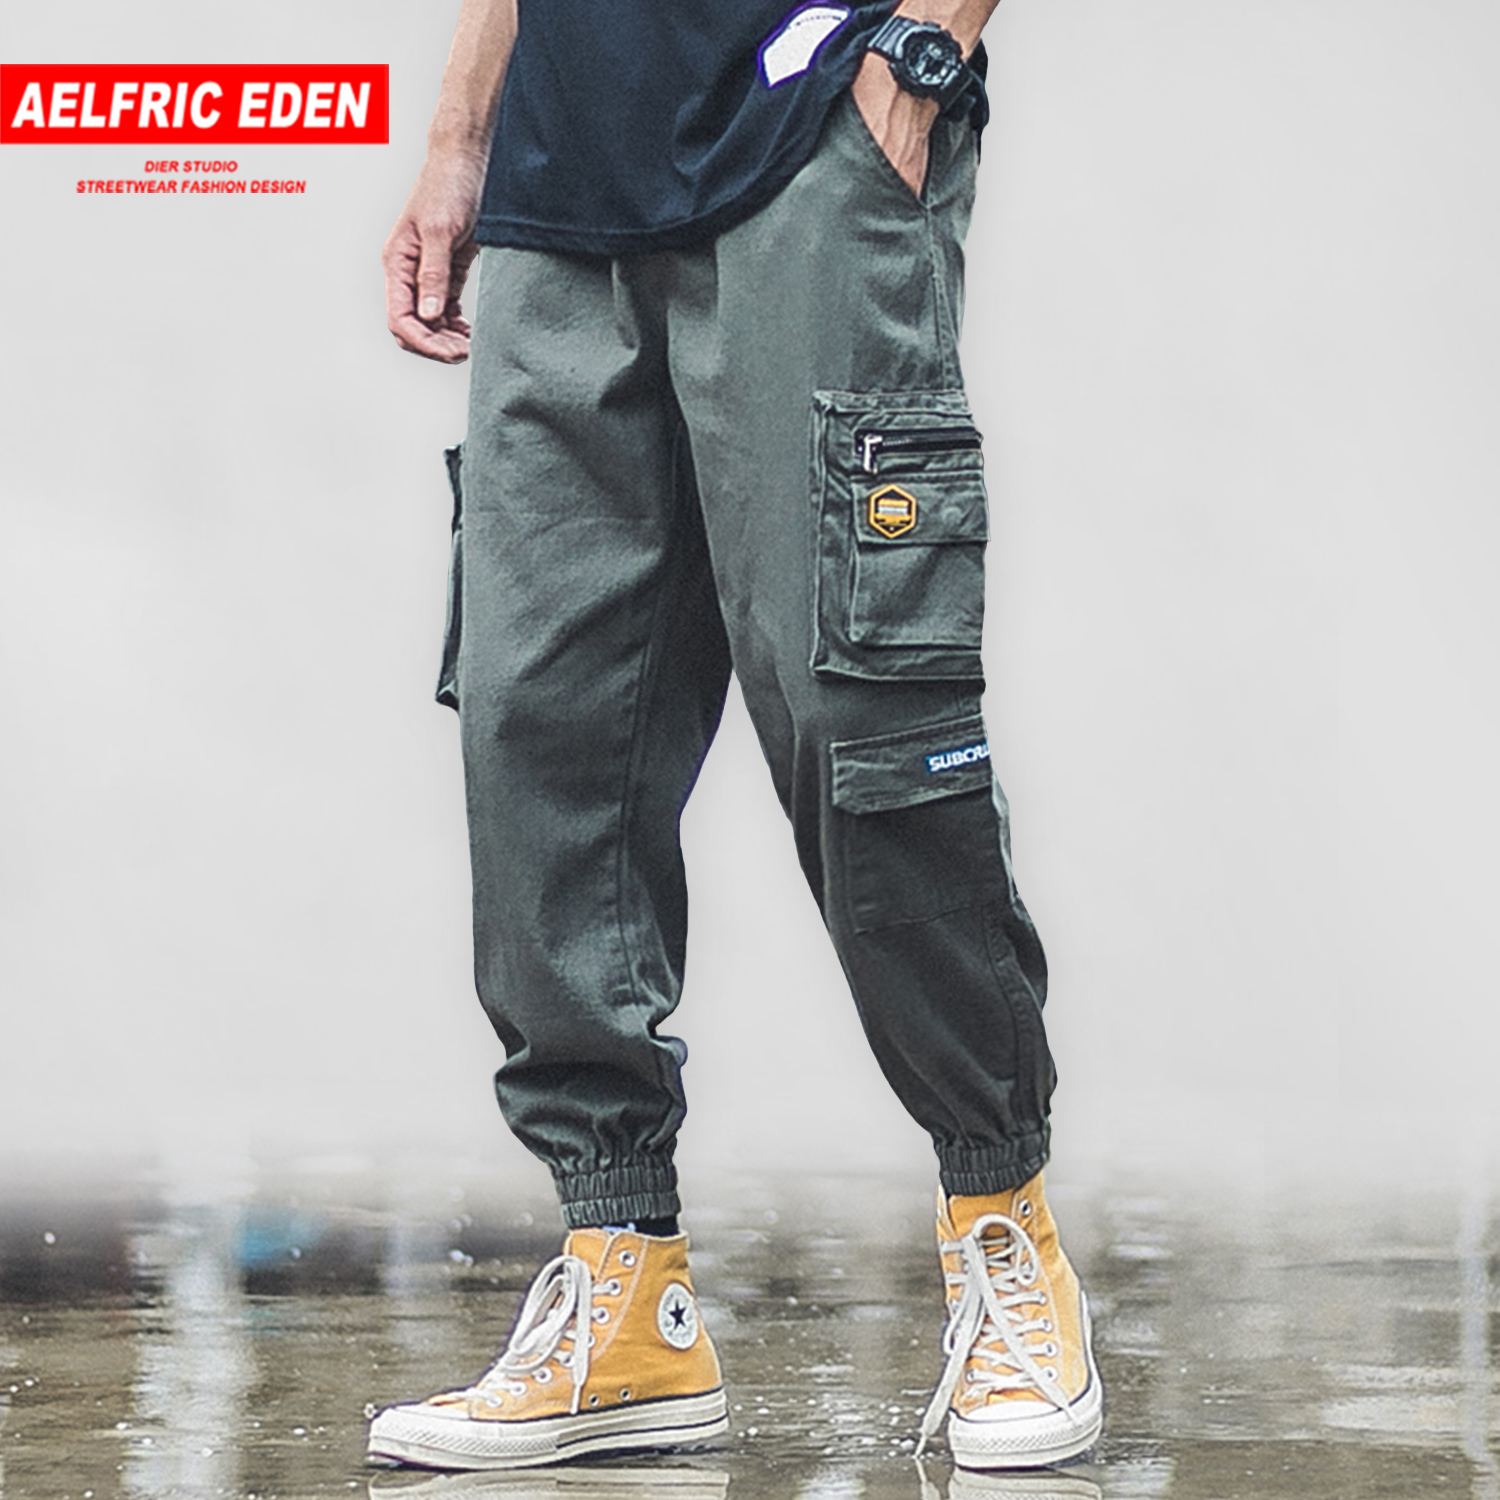 Aelfric Eden Streetwear Cargo Pants Mens Patchwork Multi Pockets 2020 Hip Hop Harajuku Joggers Casual Harem Trousers Male Bottom